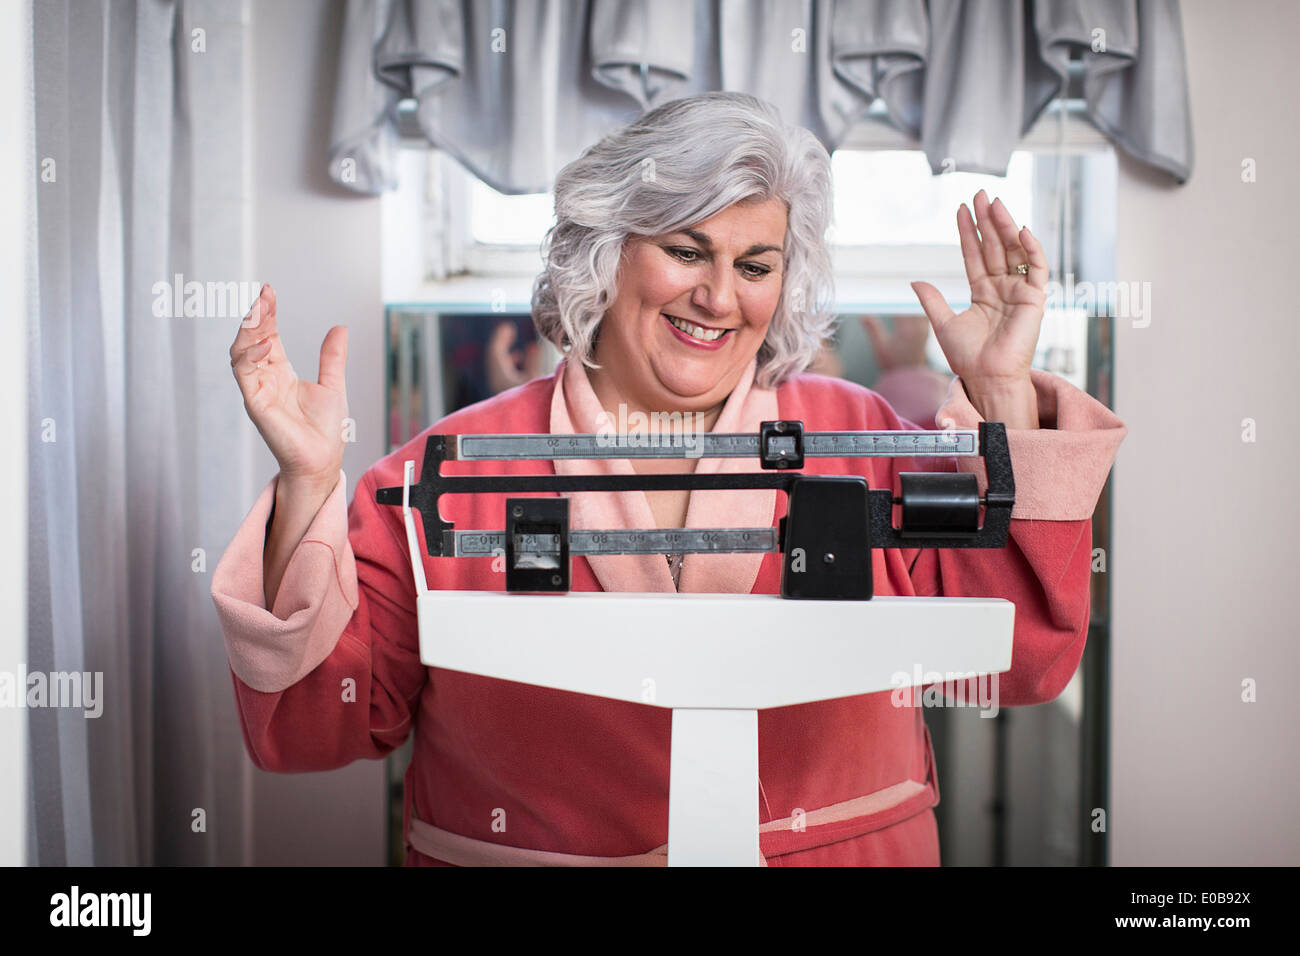 Happy mature woman on bathroom weighing scales - Stock Image